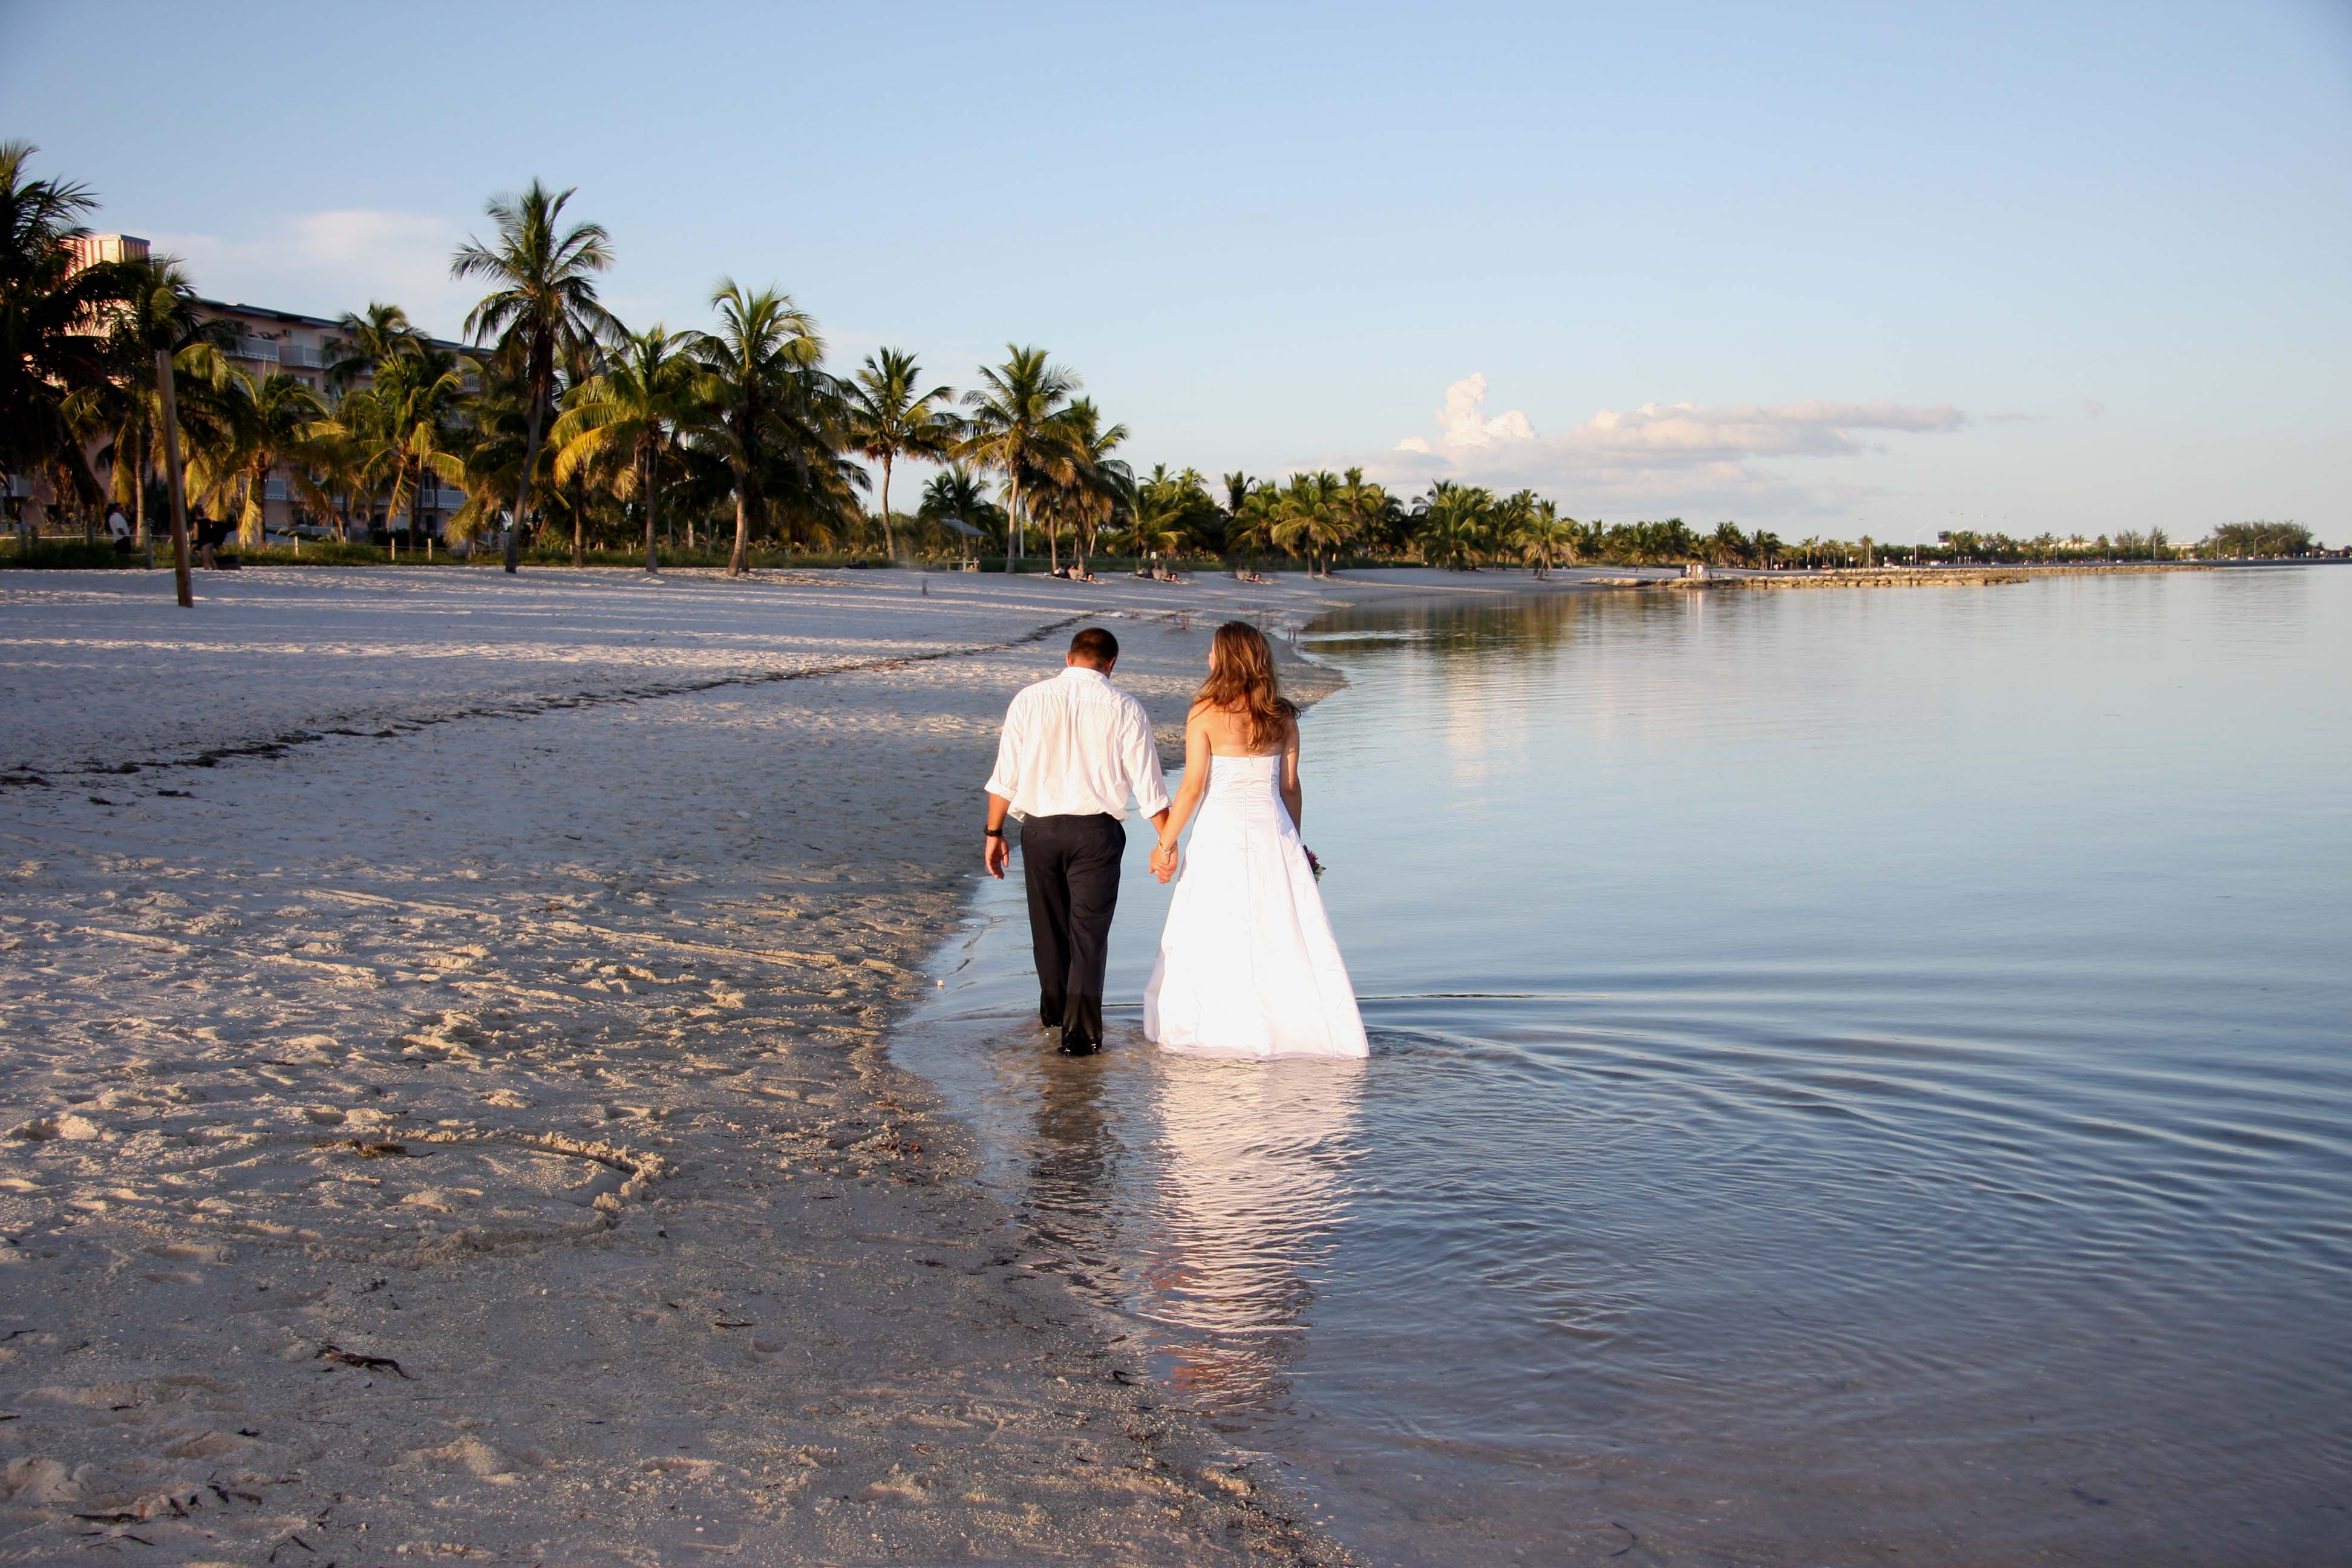 Your Key West Florida Beach Wedding Capture It In Professional Photos